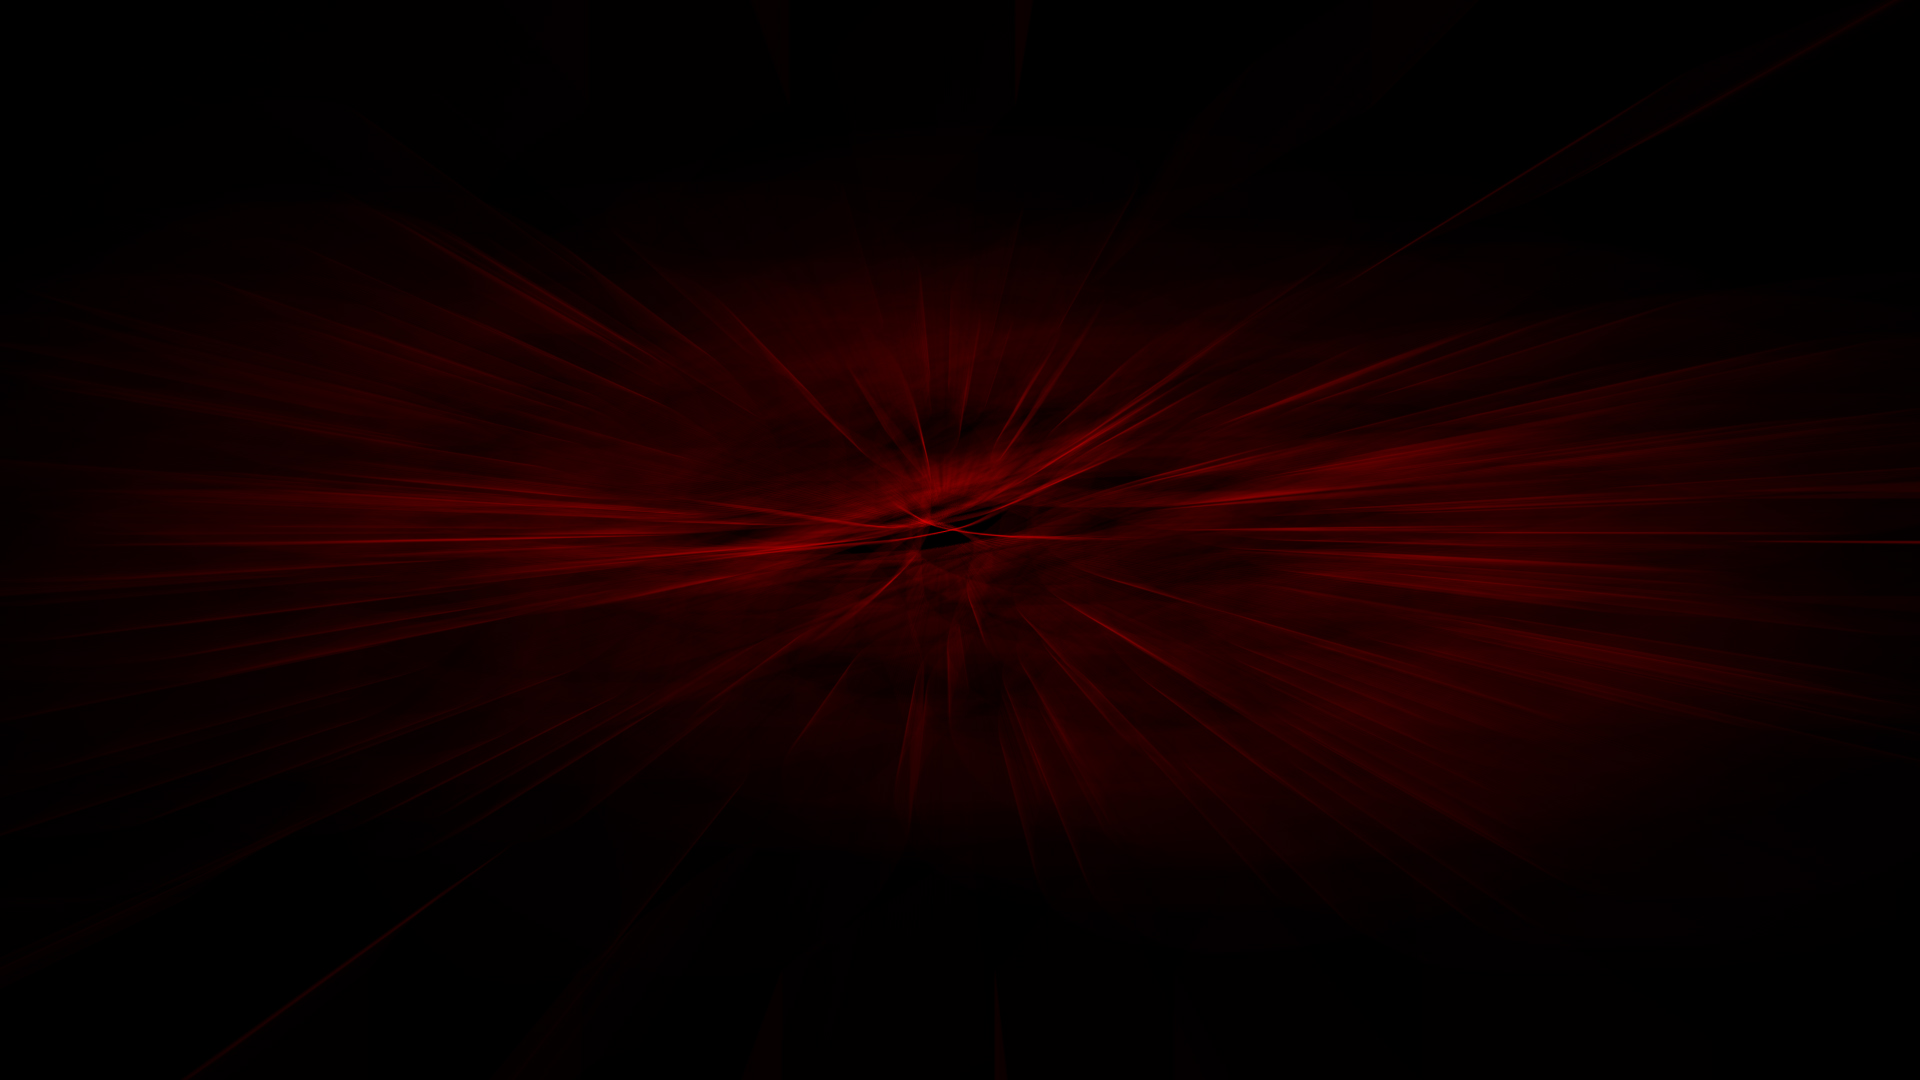 Black And Red Wallpaper 1920x1080